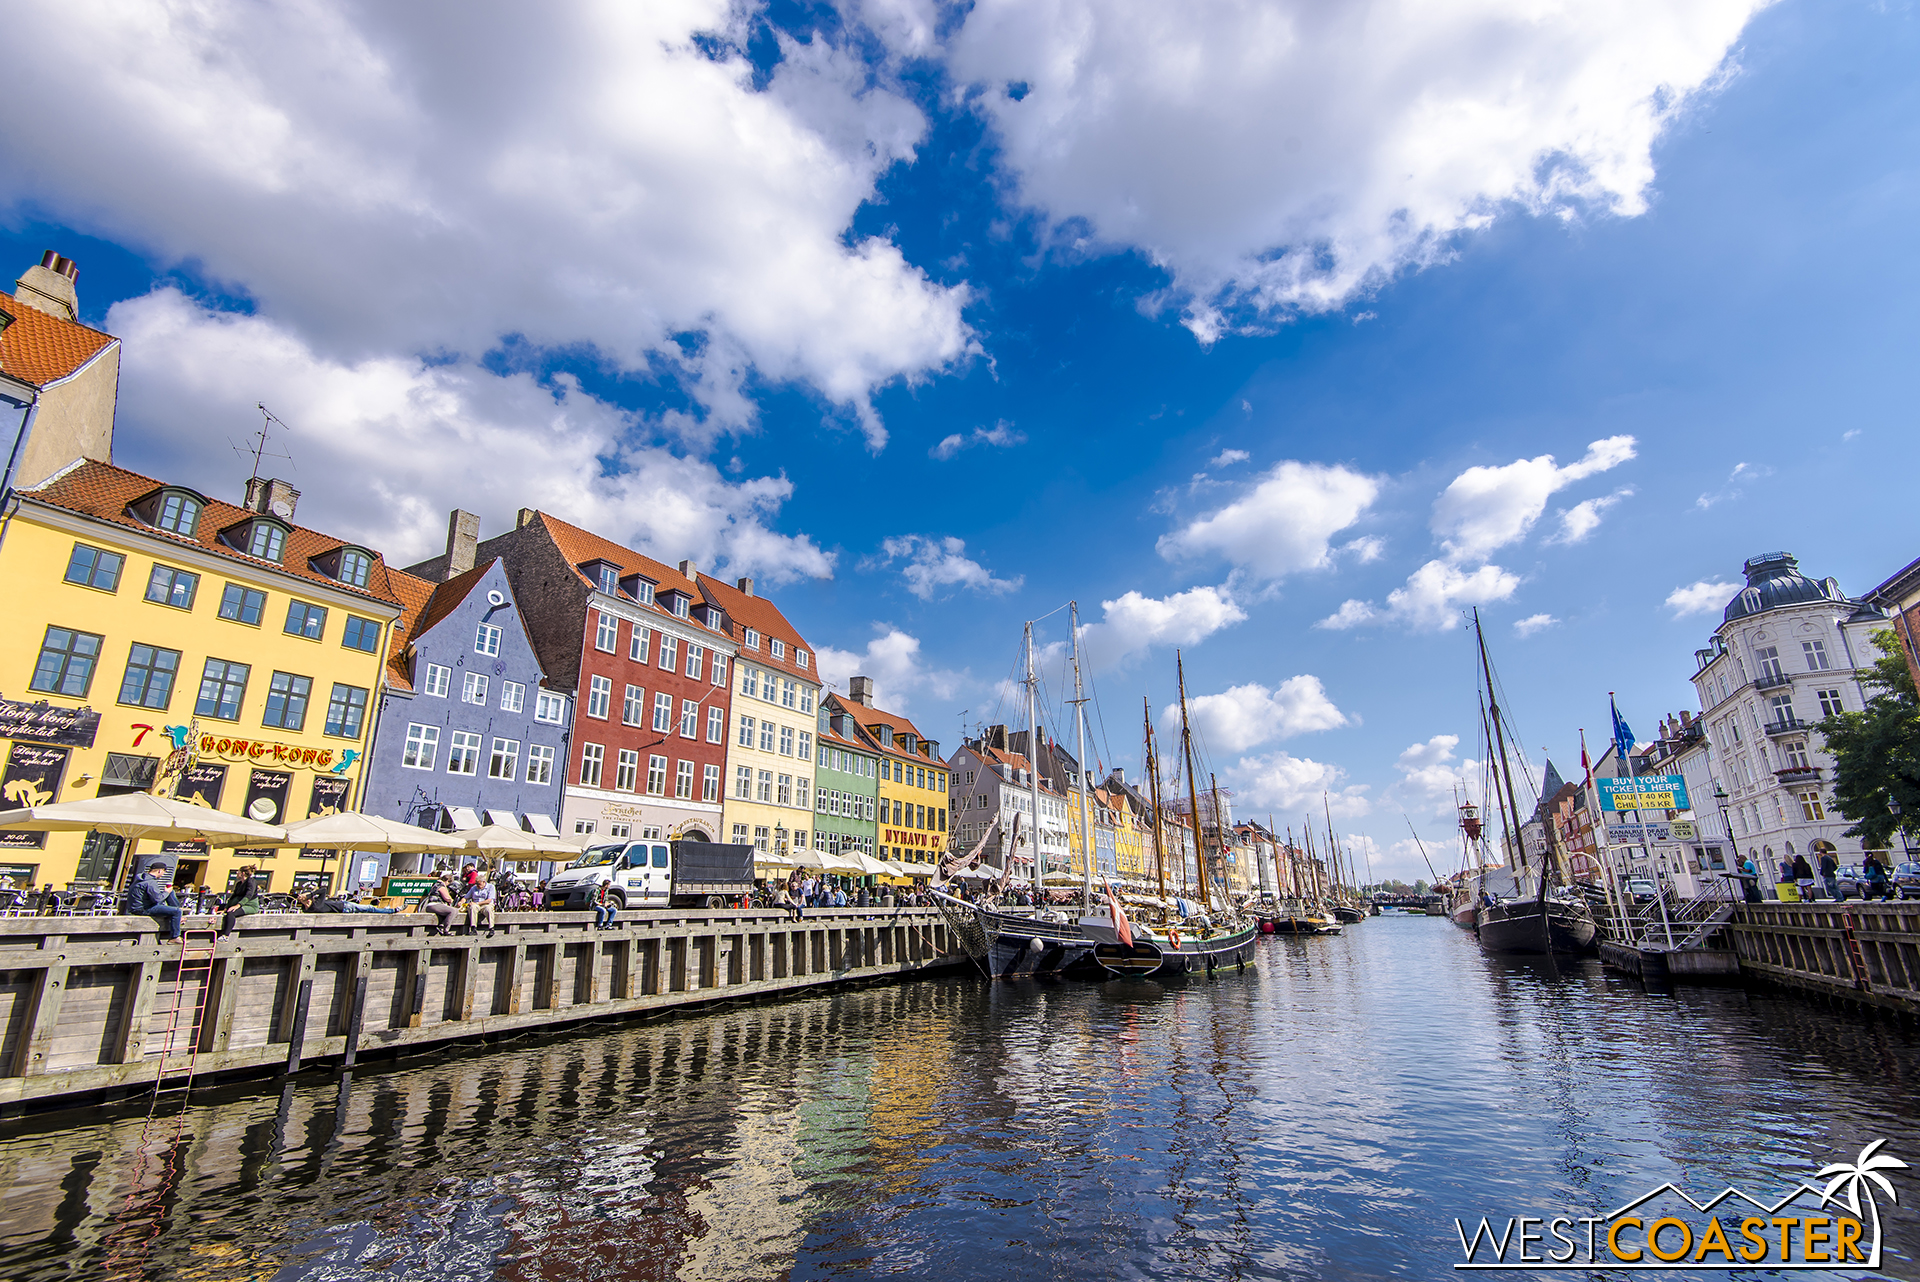 The colorful canal-fronting facades of Nyhavn form one of the most charming, photogenic, and cataloged areas of Copenhagen.